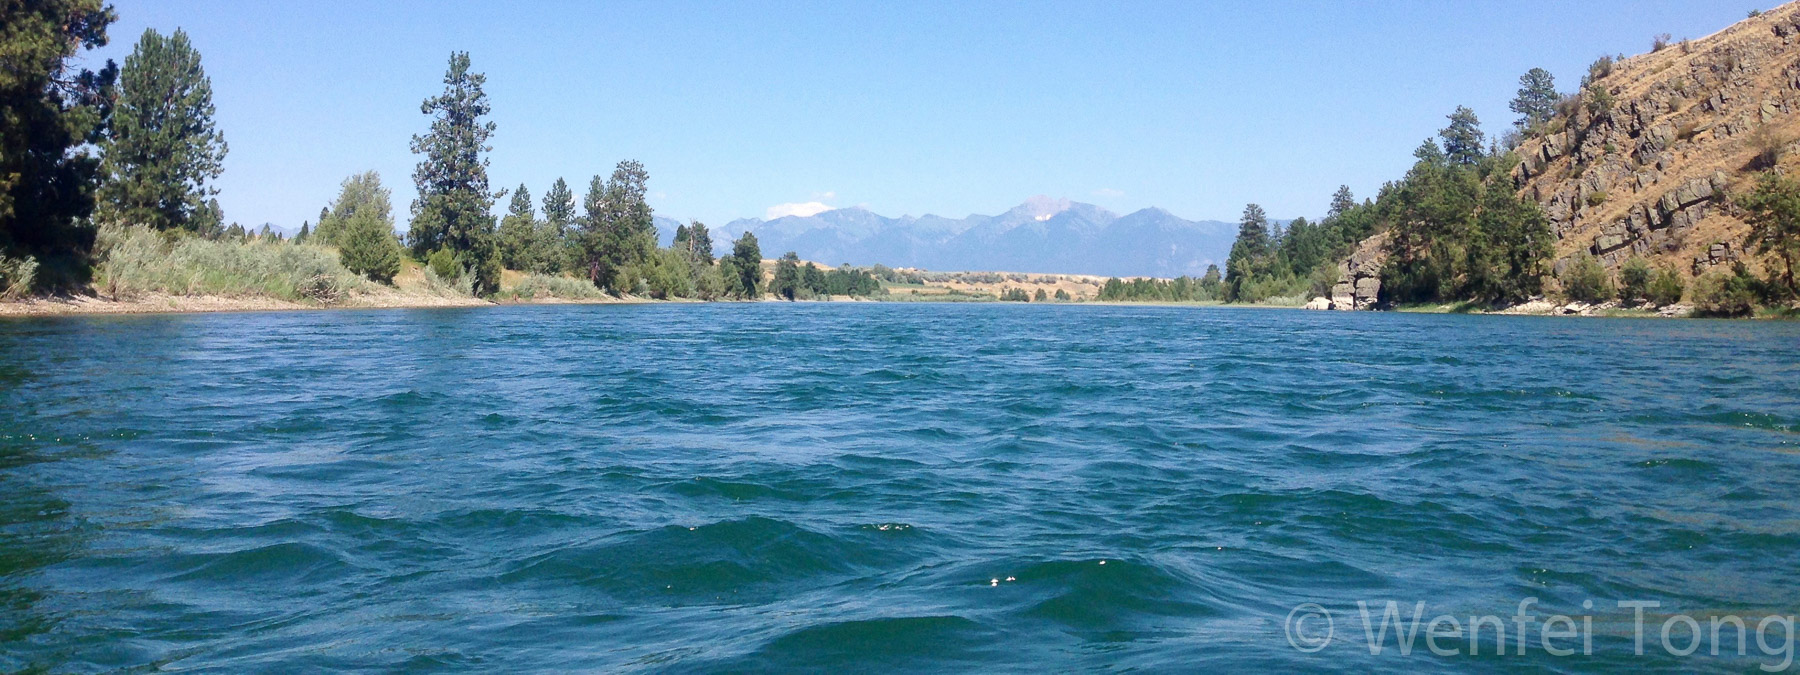 View fof the mission mountains from a float in the middle of the flathead river